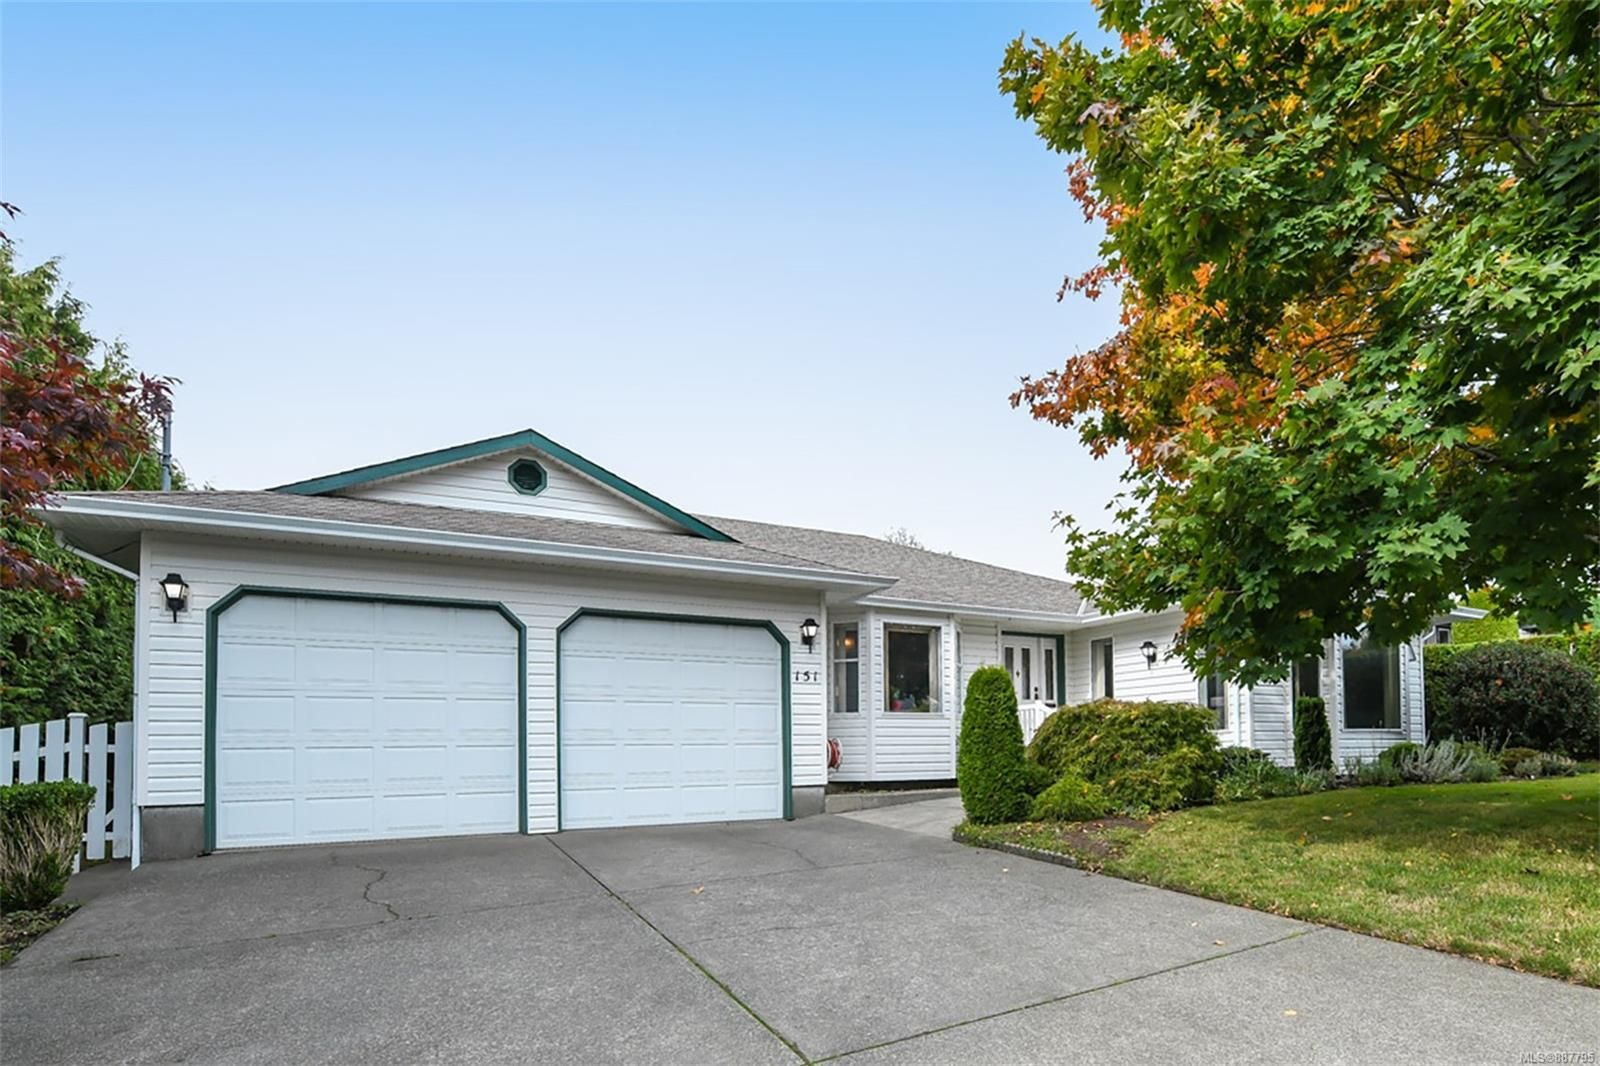 Main Photo: 151 Pritchard Rd in Comox: CV Comox (Town of) House for sale (Comox Valley)  : MLS®# 887795